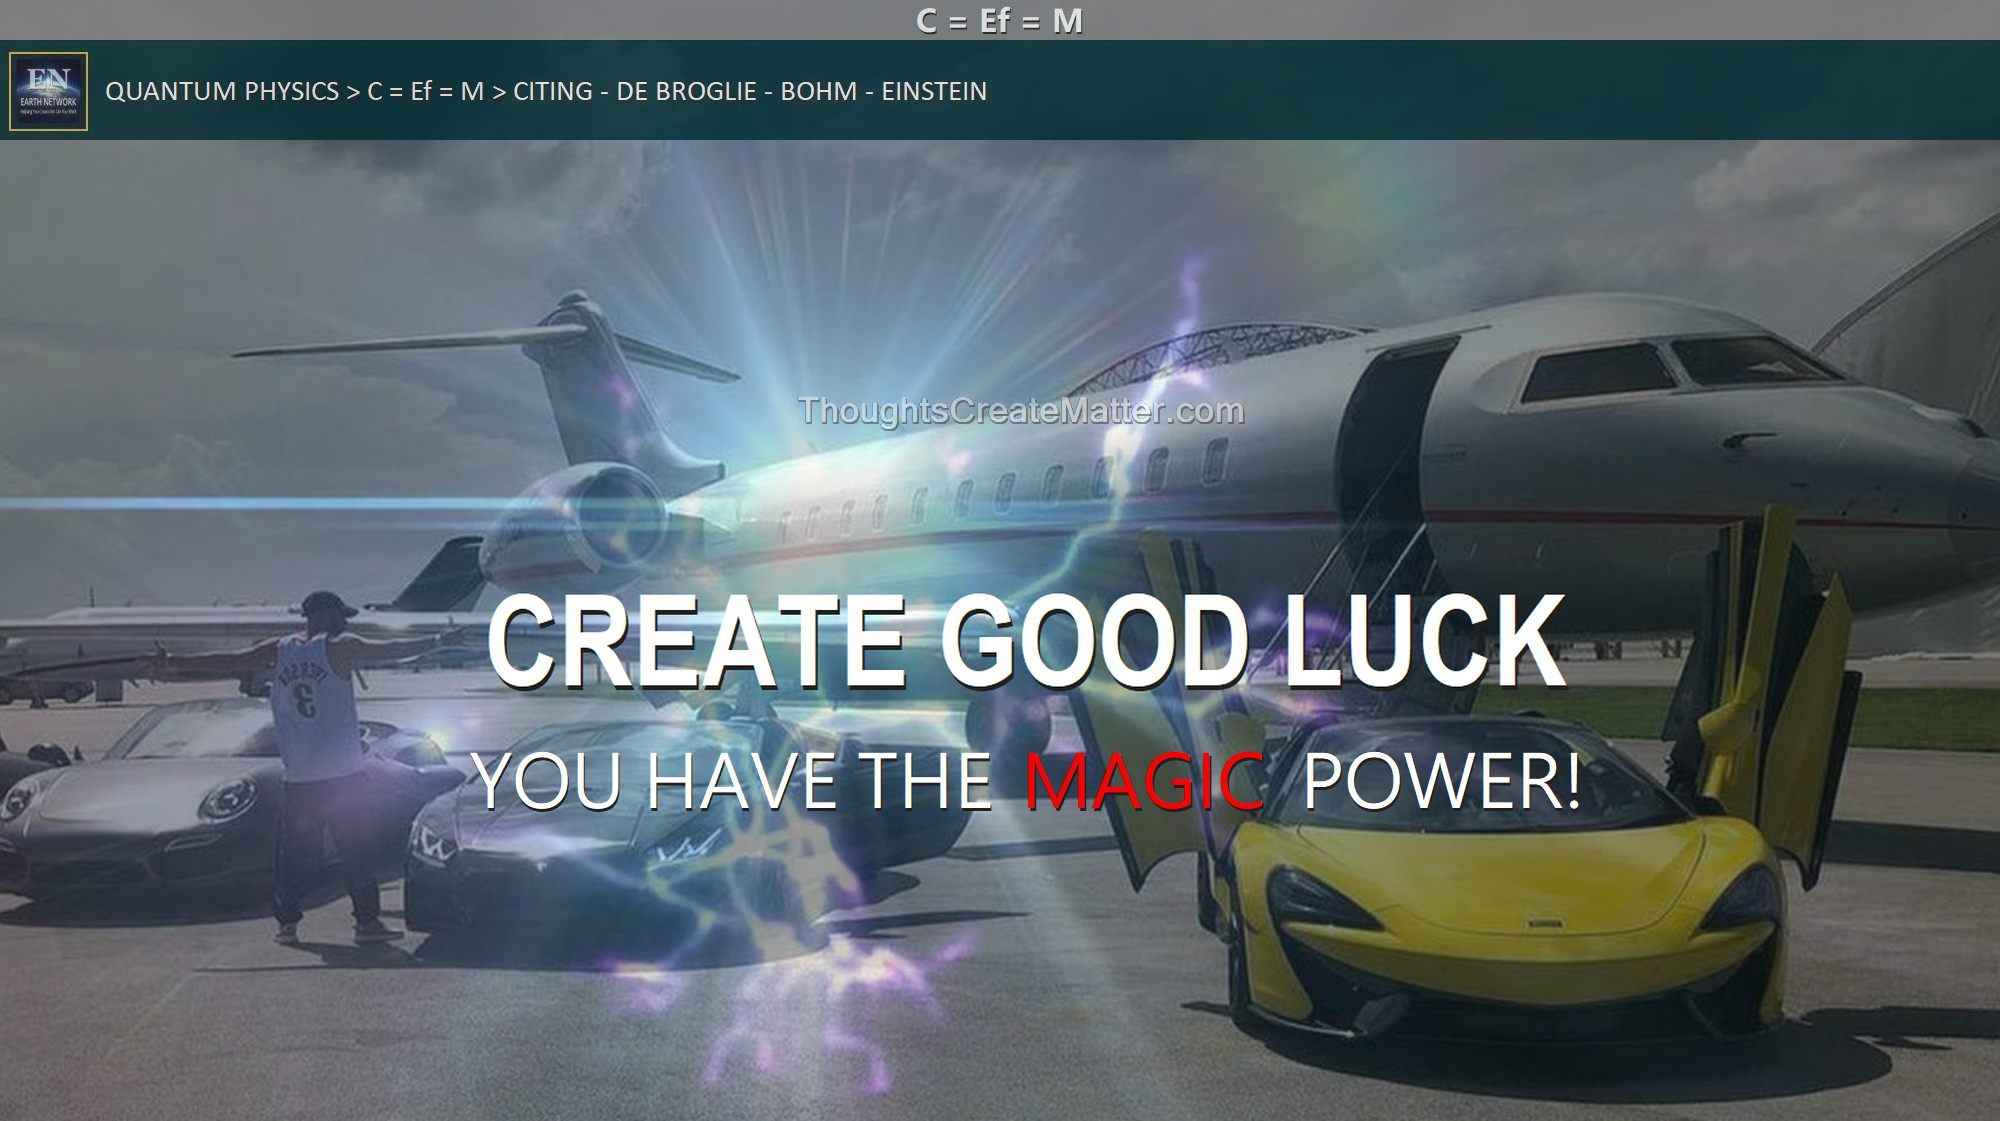 Man-with-jet-cars-depicts-how-to-use-thoughts-to-create-good-luck-your-mind-can-cause-good-things-to-happen